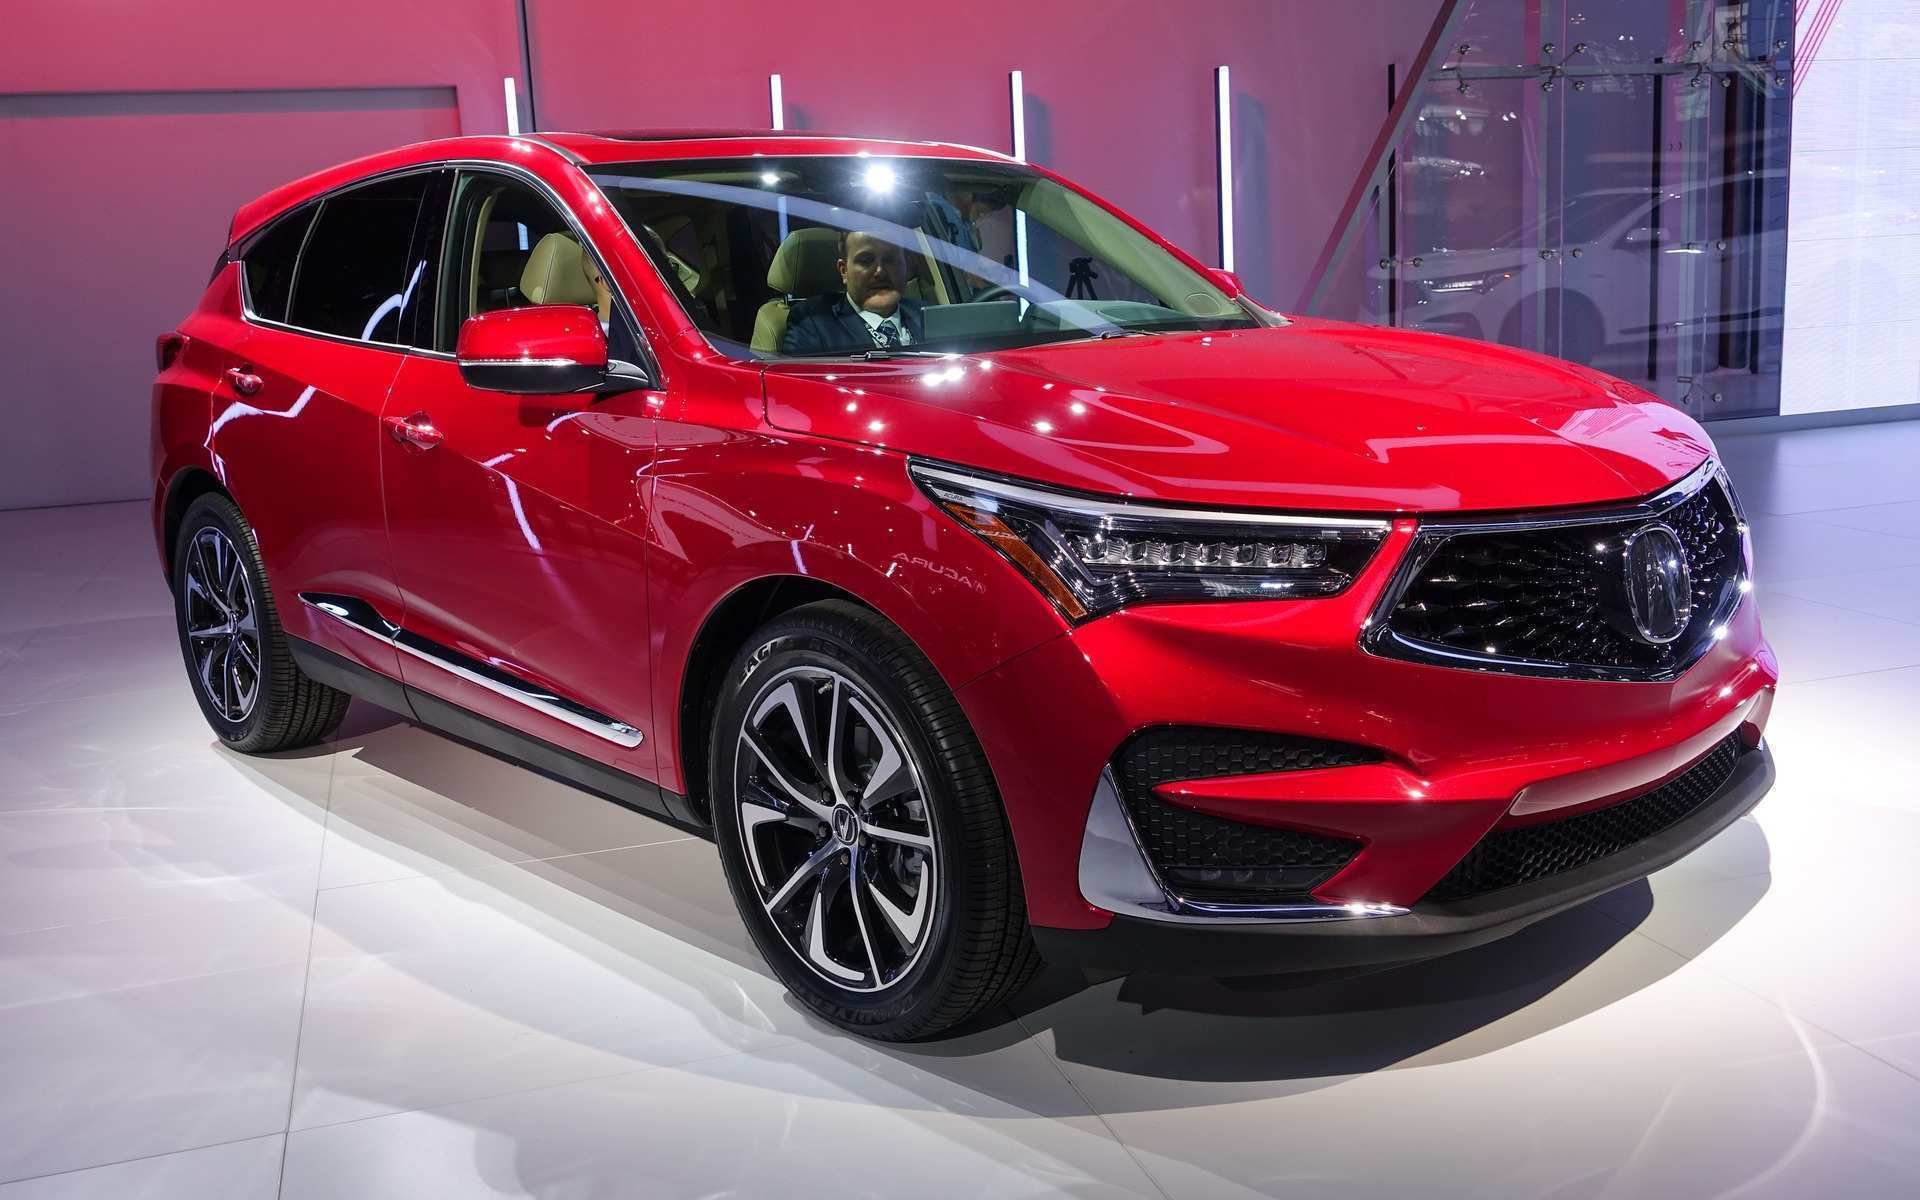 96 New 2019 Acura Rdx Photos History for 2019 Acura Rdx Photos